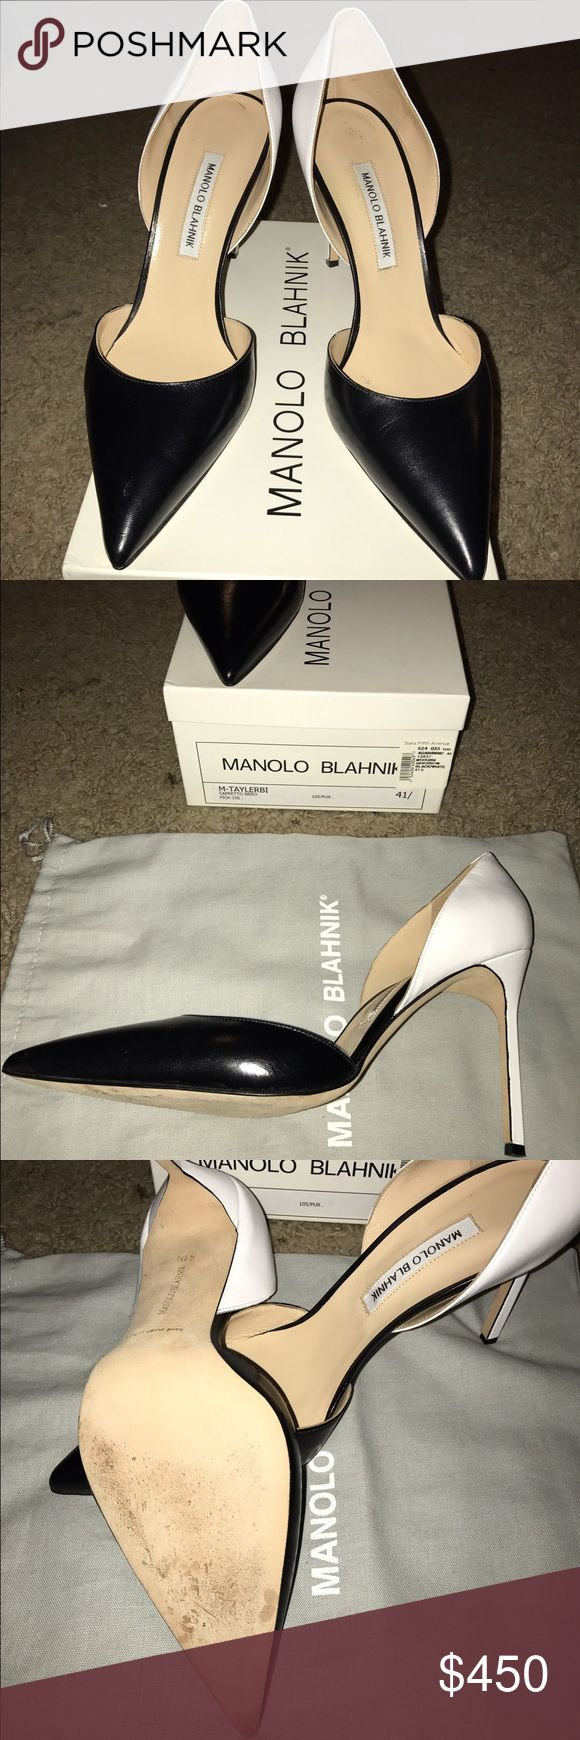 Manolo Blahnik Black and White Pumps Size 41 Black and White d'Orsay style pumps. Worn once. In excellent used condition. Fits like a size 10. Manolo Blahnik Shoes Heels